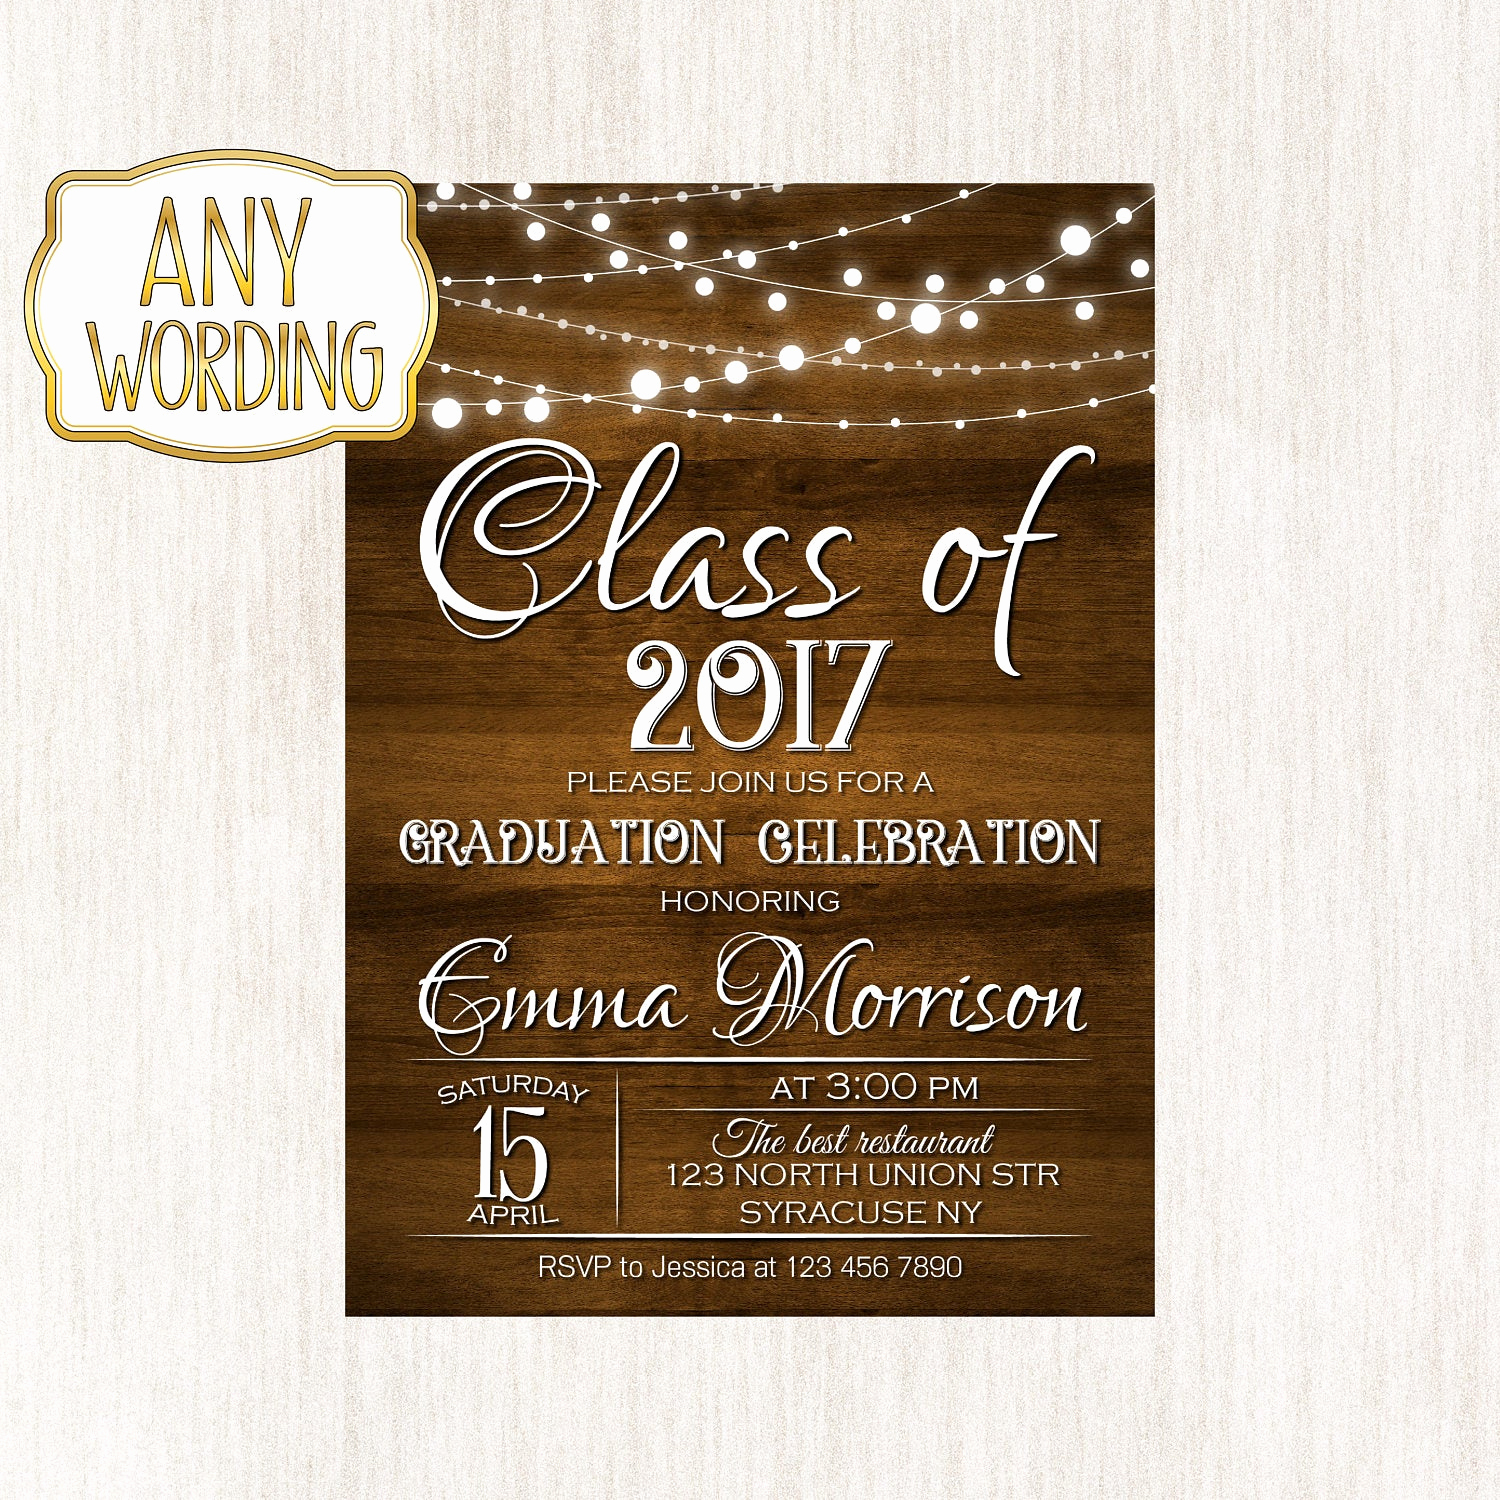 College Graduation Invitation Wording Luxury Graduation Celebration Invitation High School Graduation